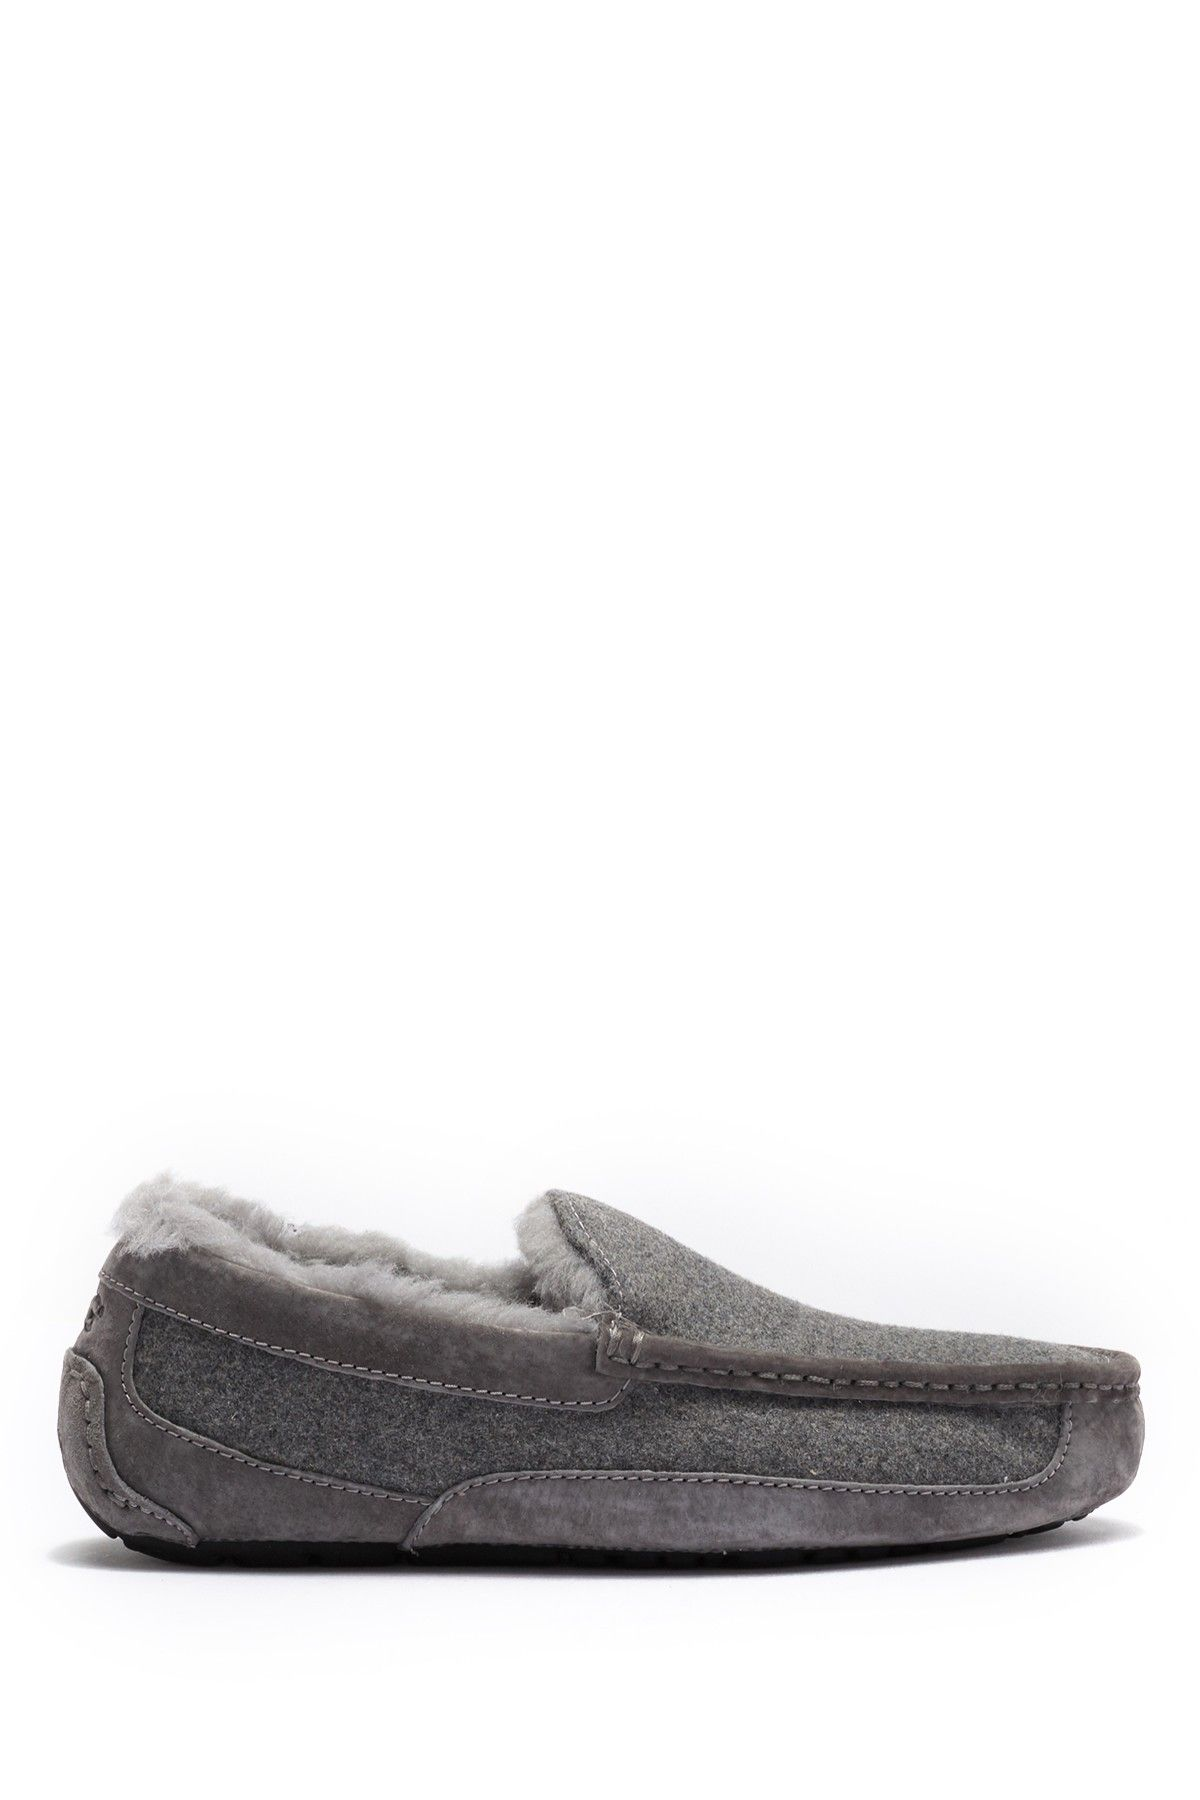 Ascot UGGpure(TM) Wool Lined Slipper by UGG on  nordstrom rack 8d5072fd9